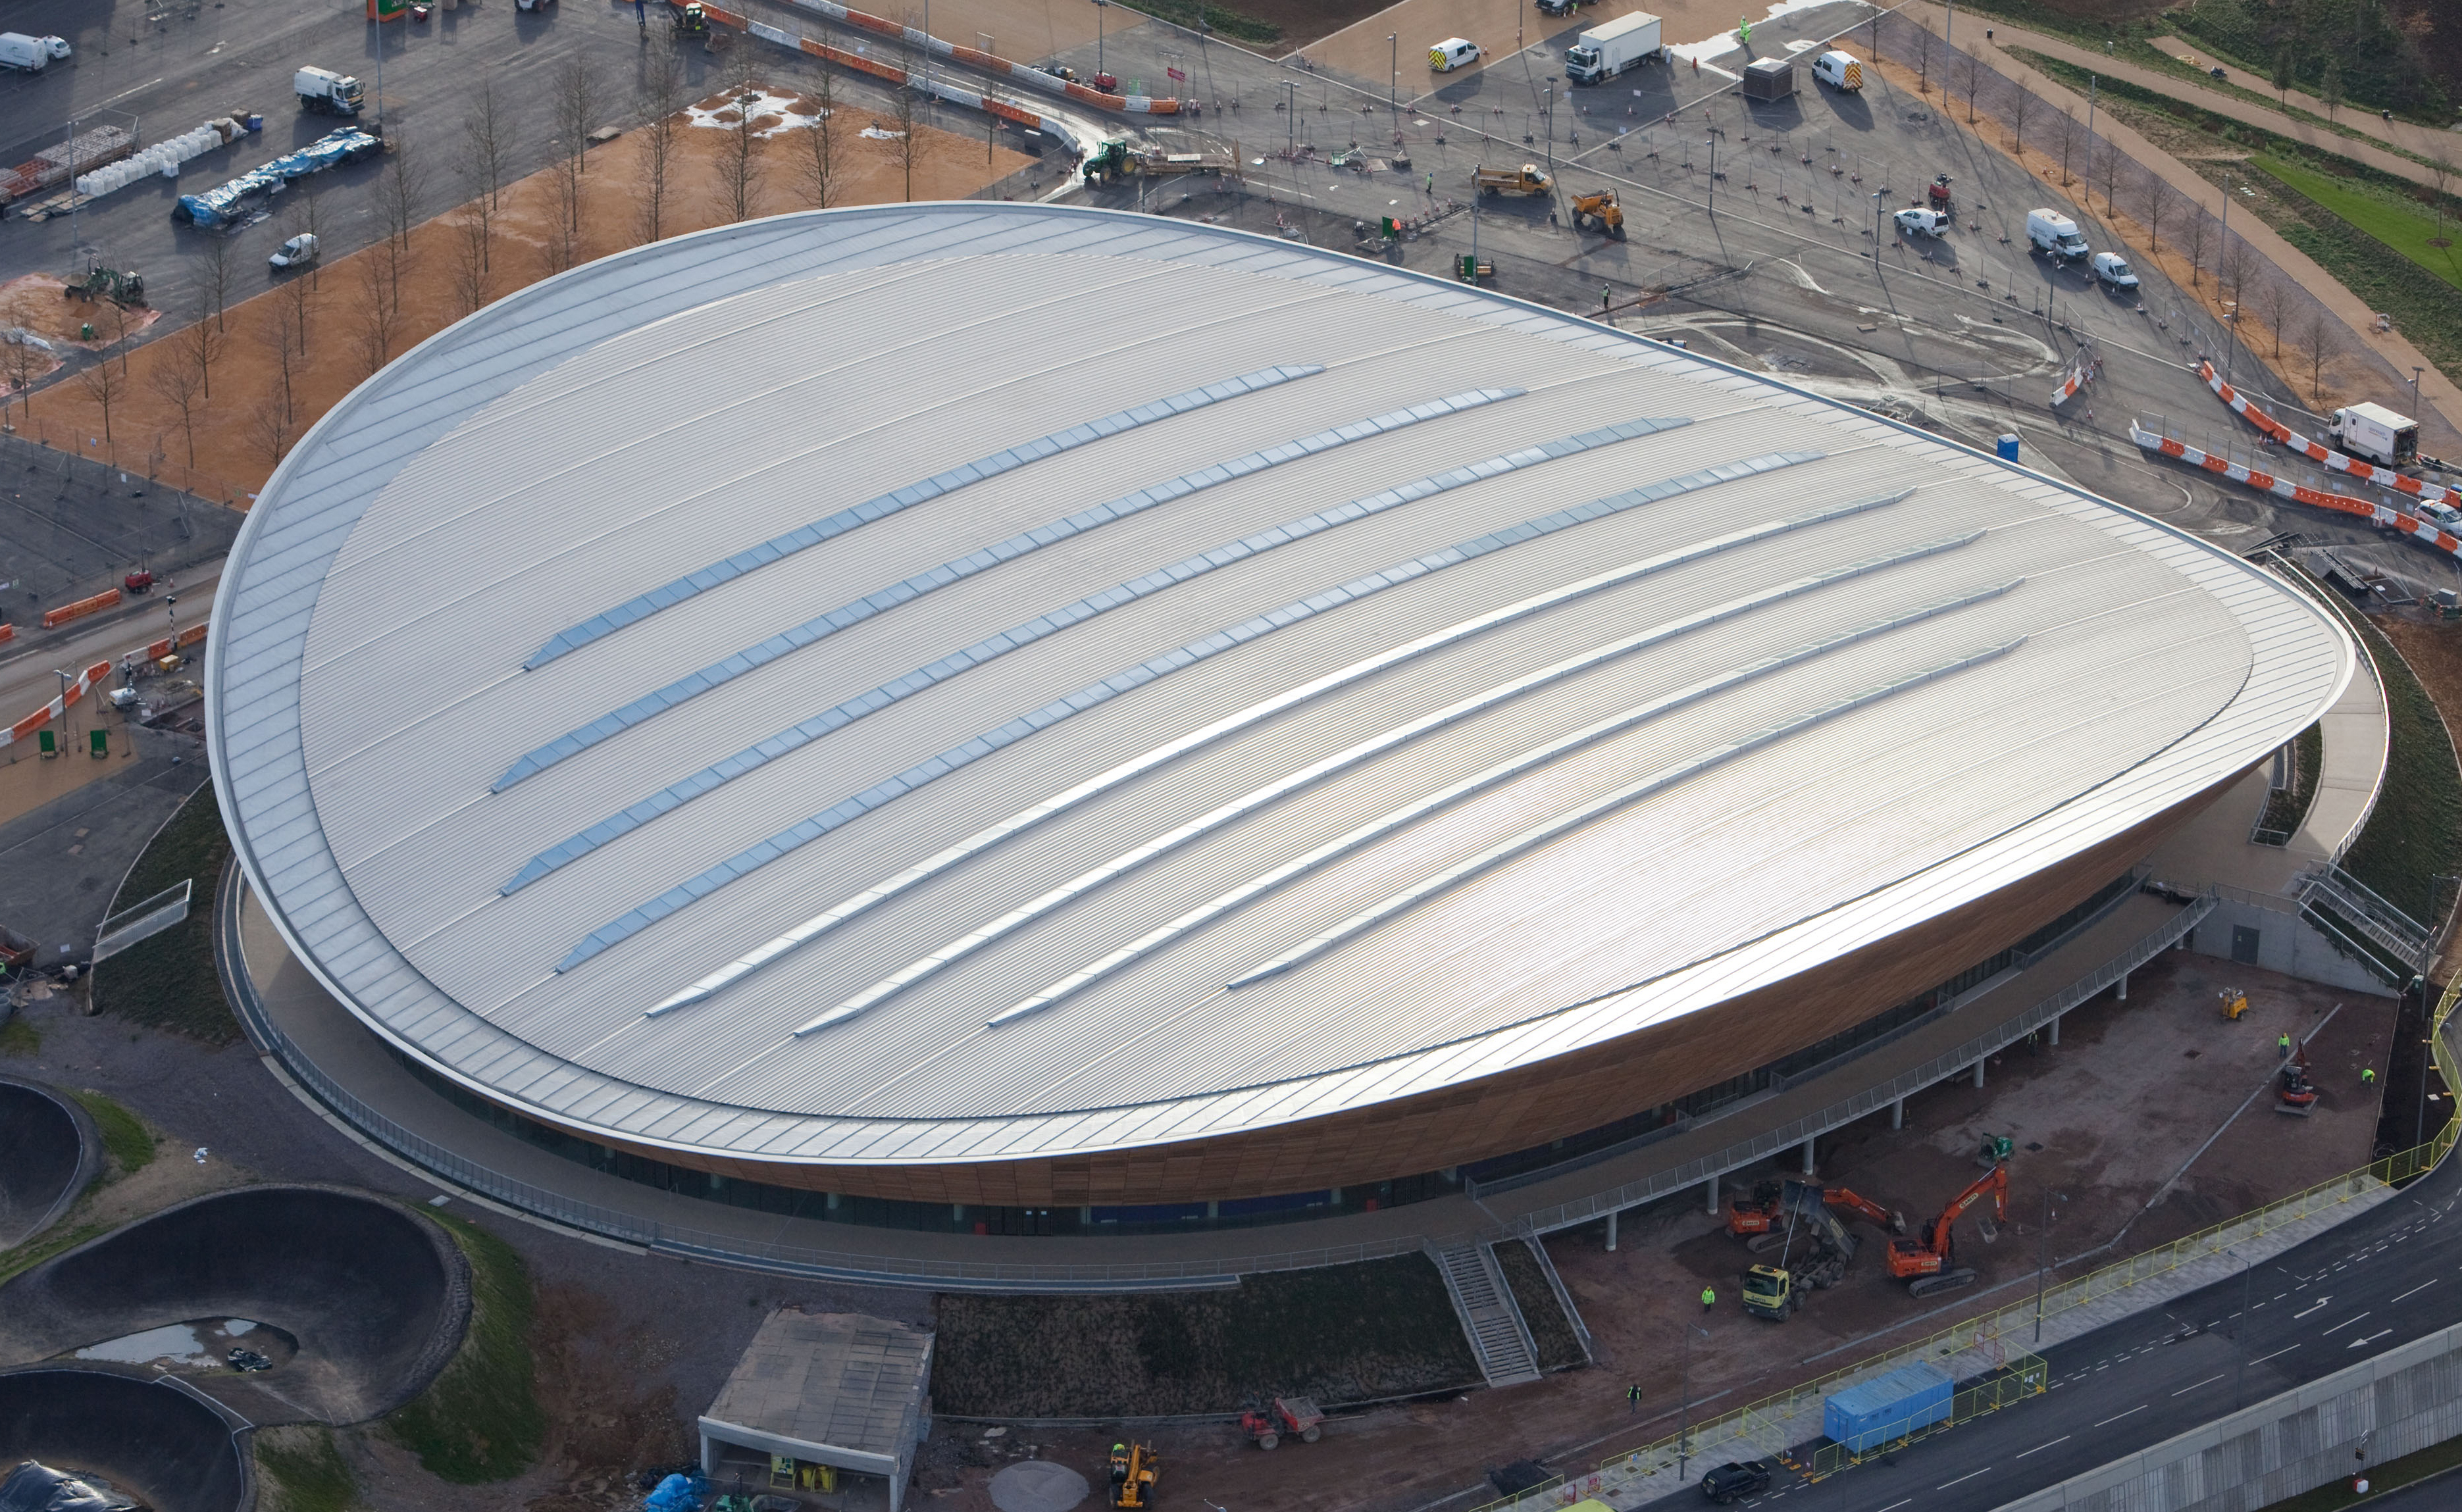 Olympic Velodrome Pvcconstruct